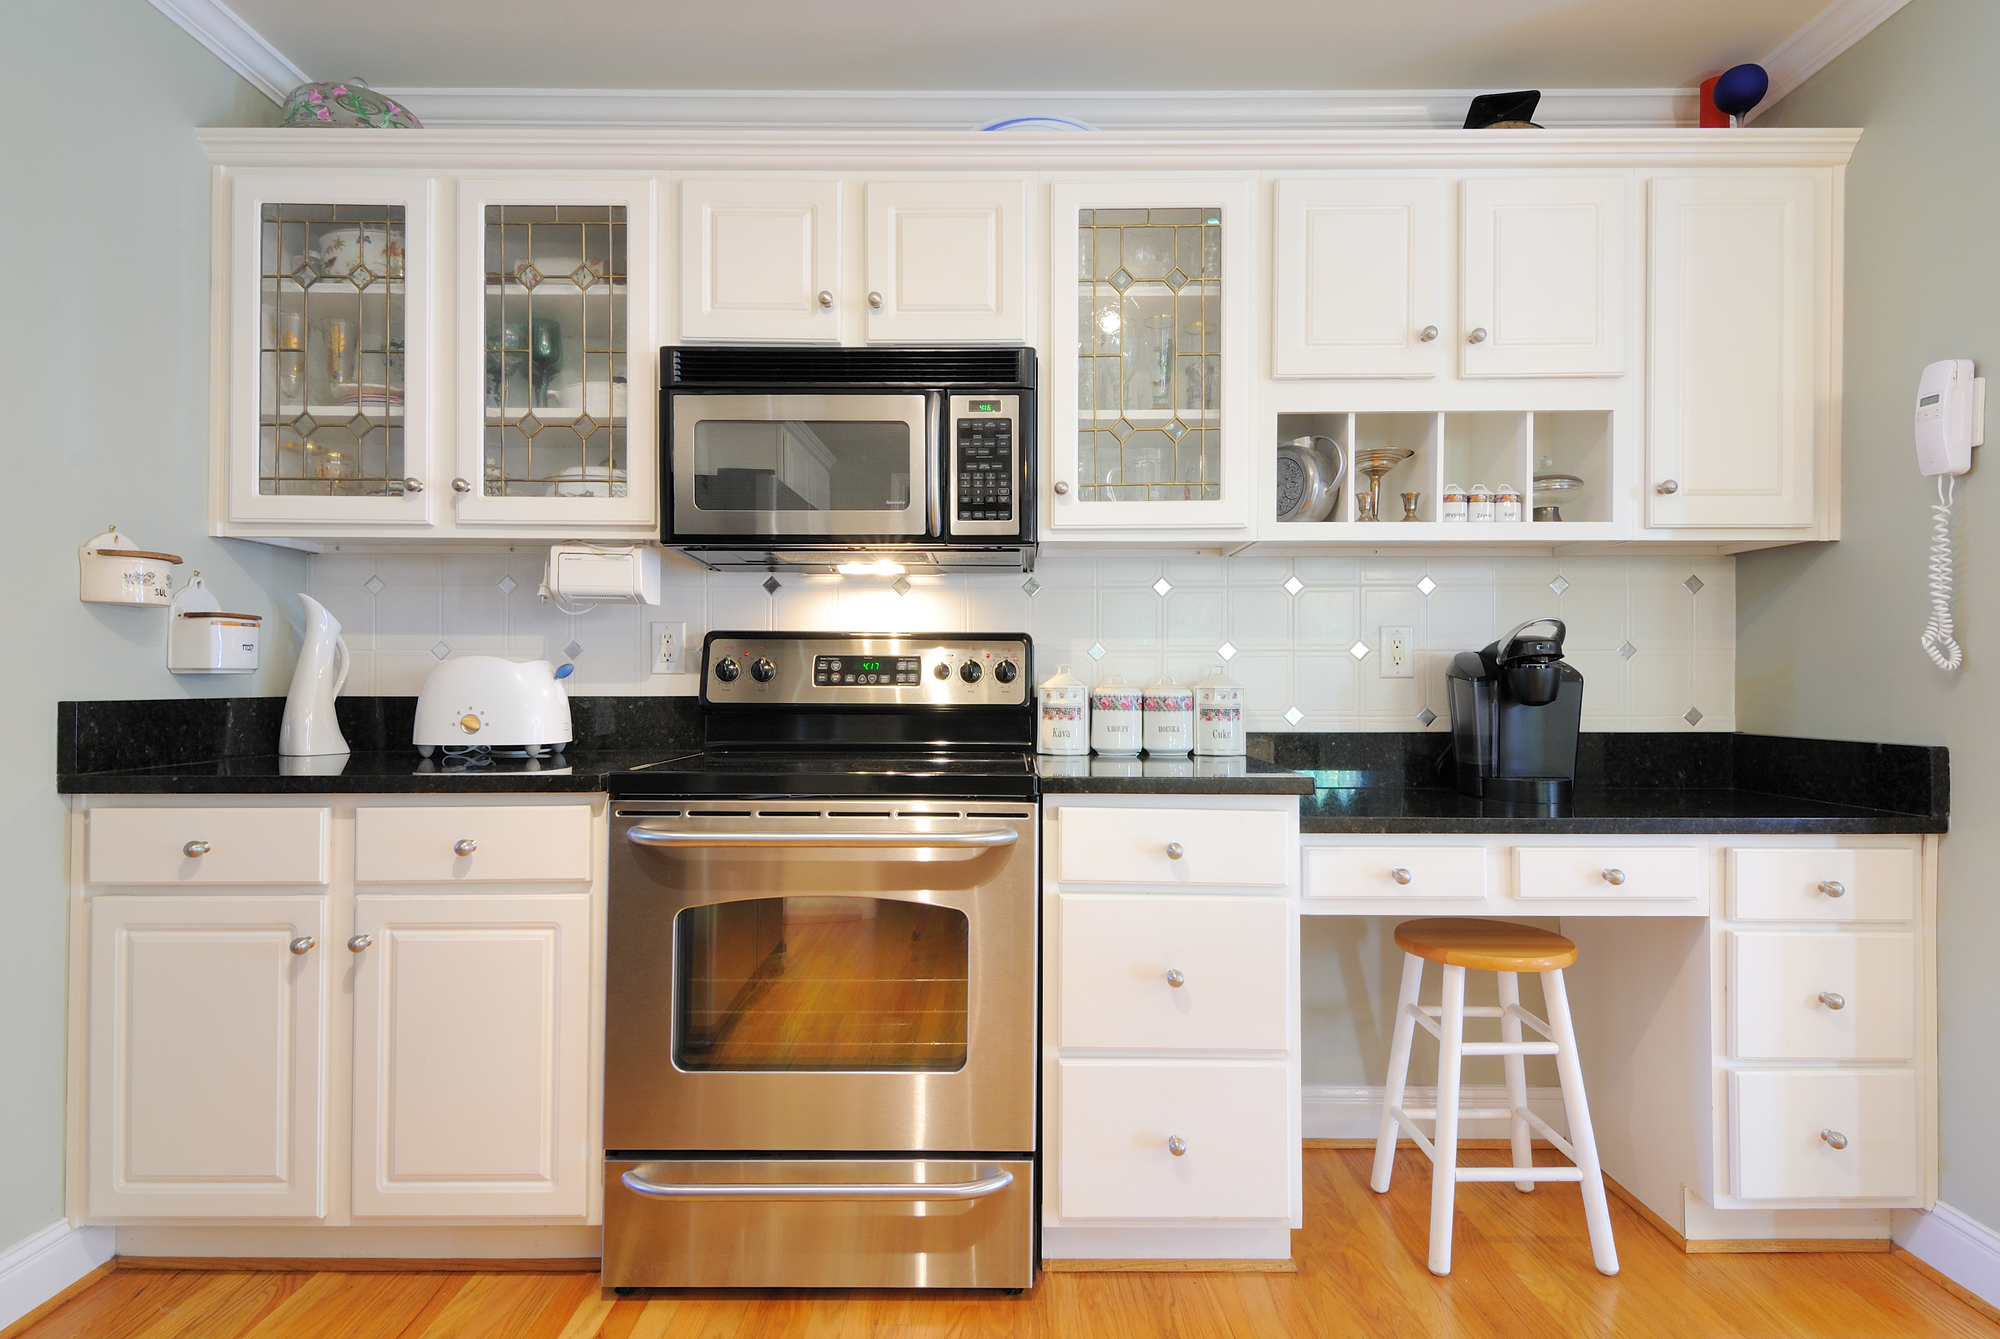 Keep Labor Costs Low with Ready to Assemble Cabinets